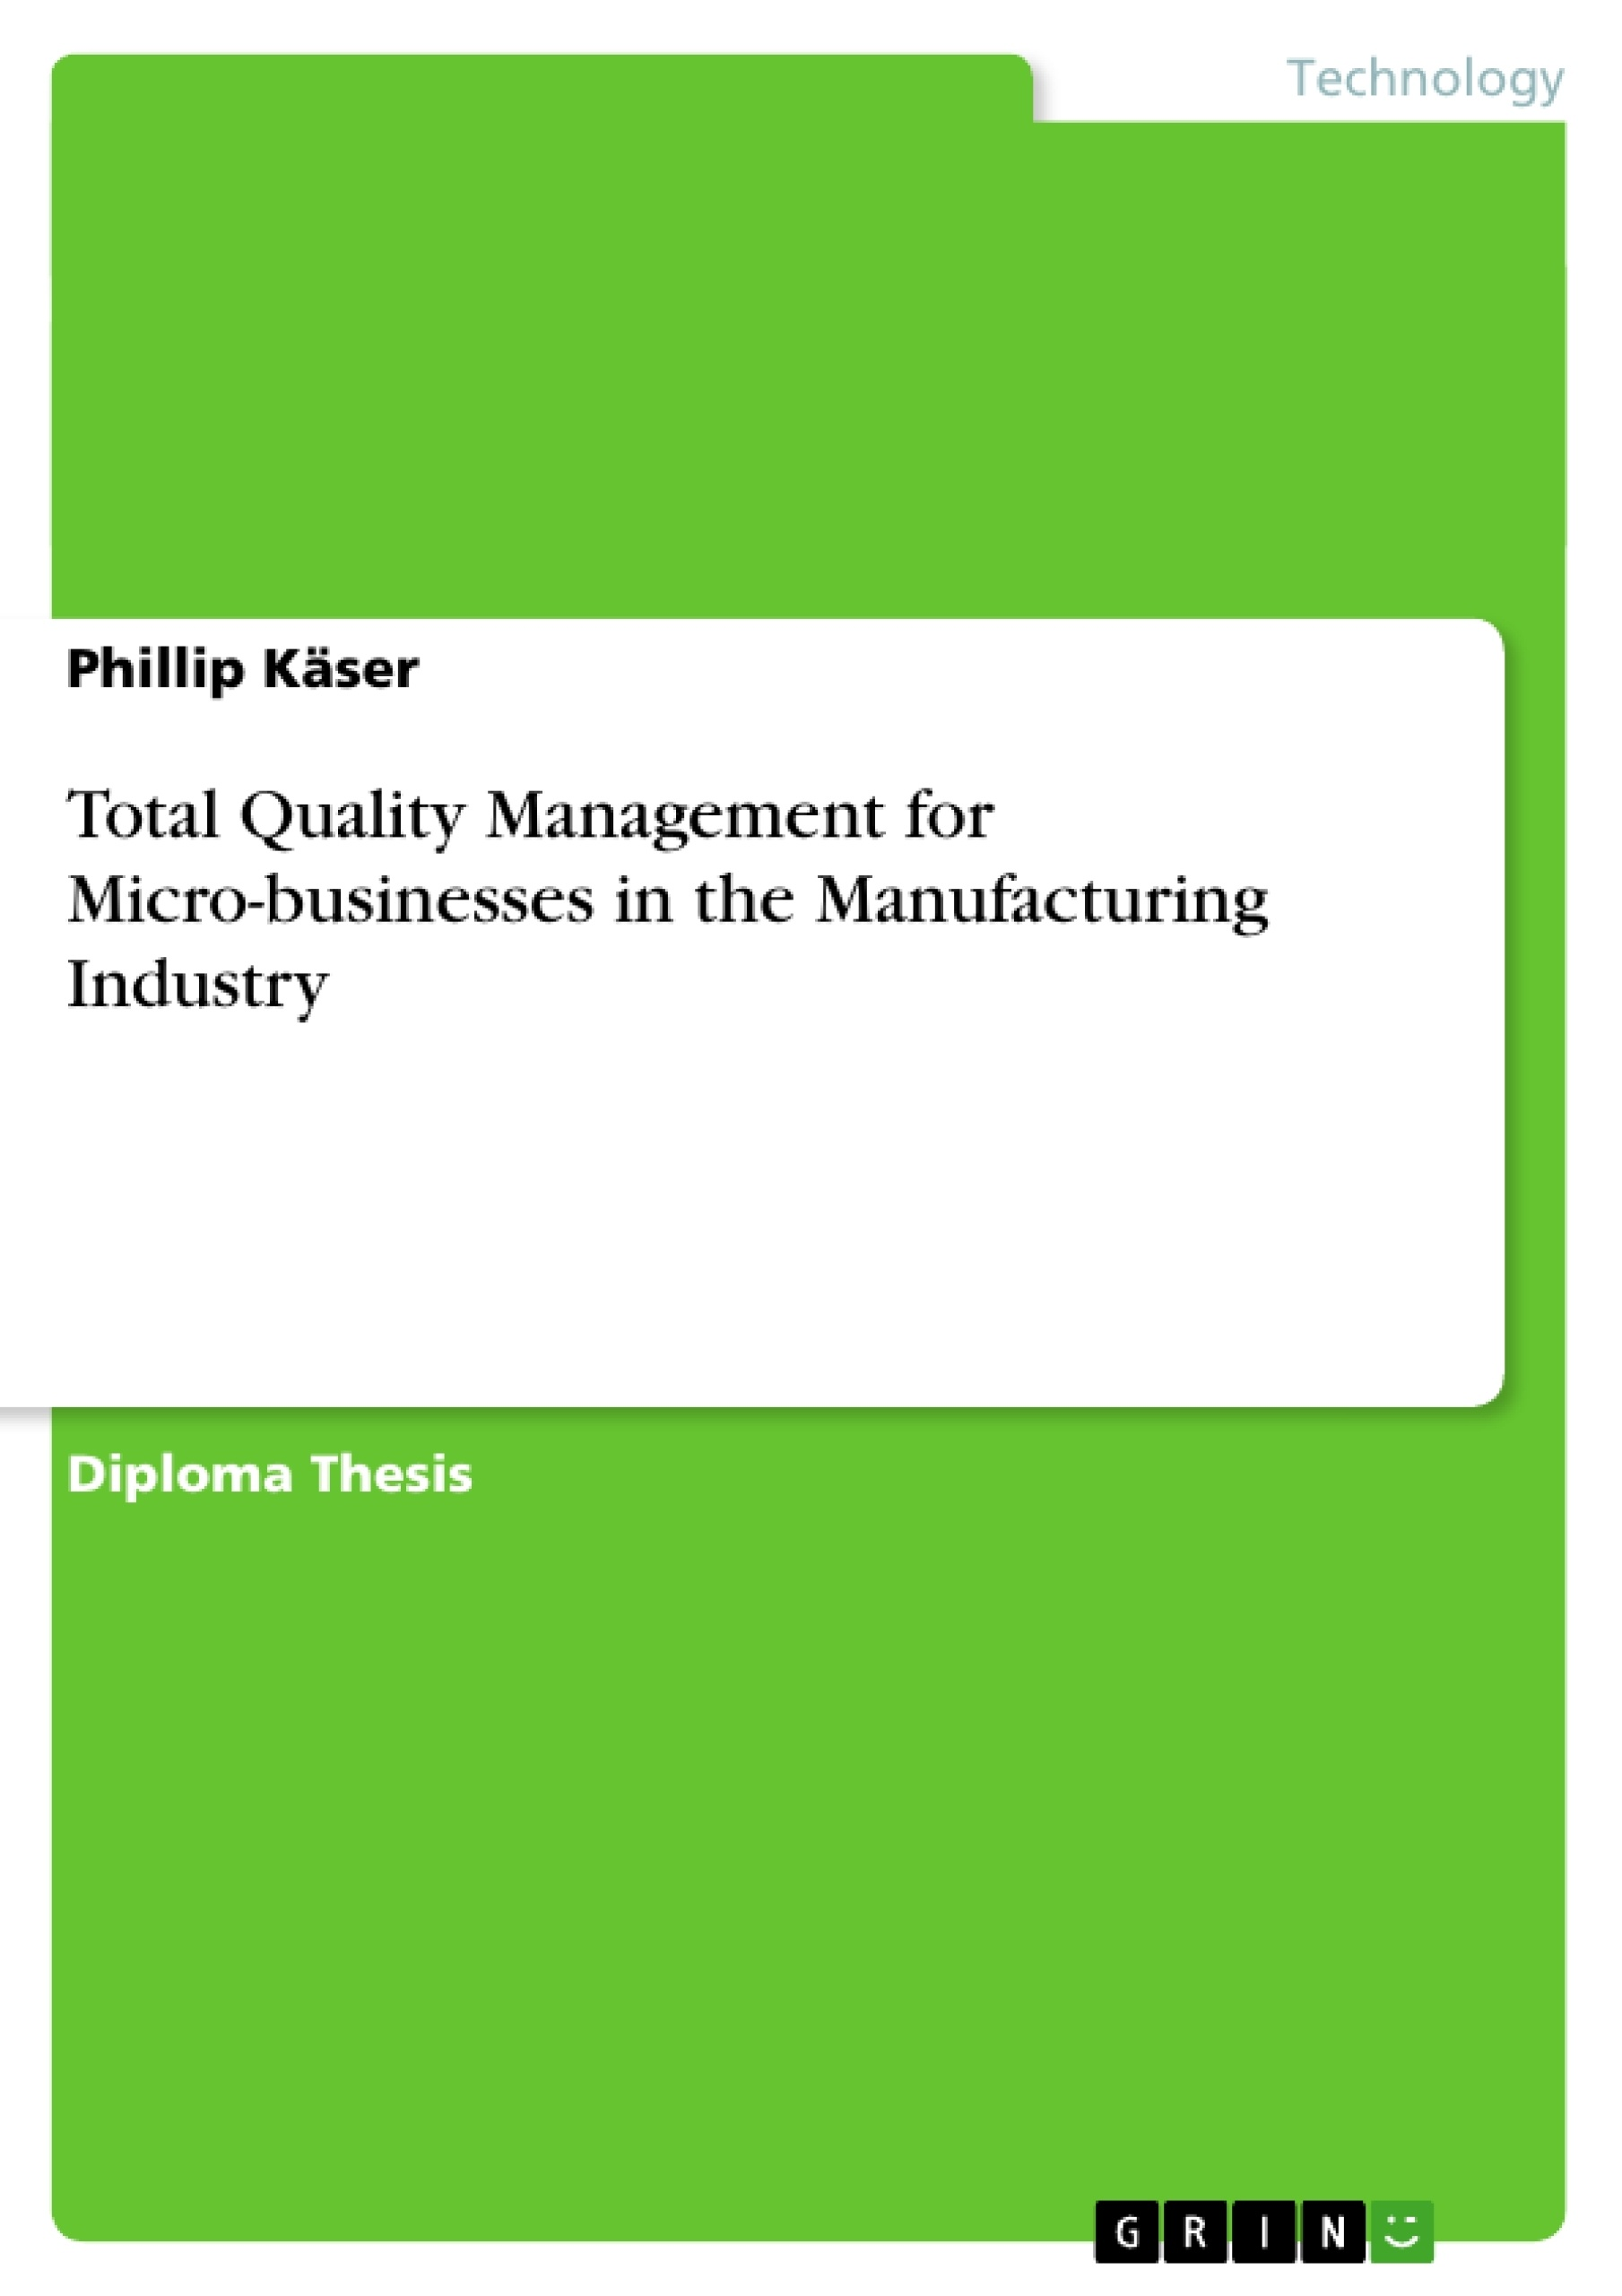 bachelor thesis tqm This item was submitted to loughborough university as a phd thesis by the   implementation of total quality management (tqm) within construction  companies.